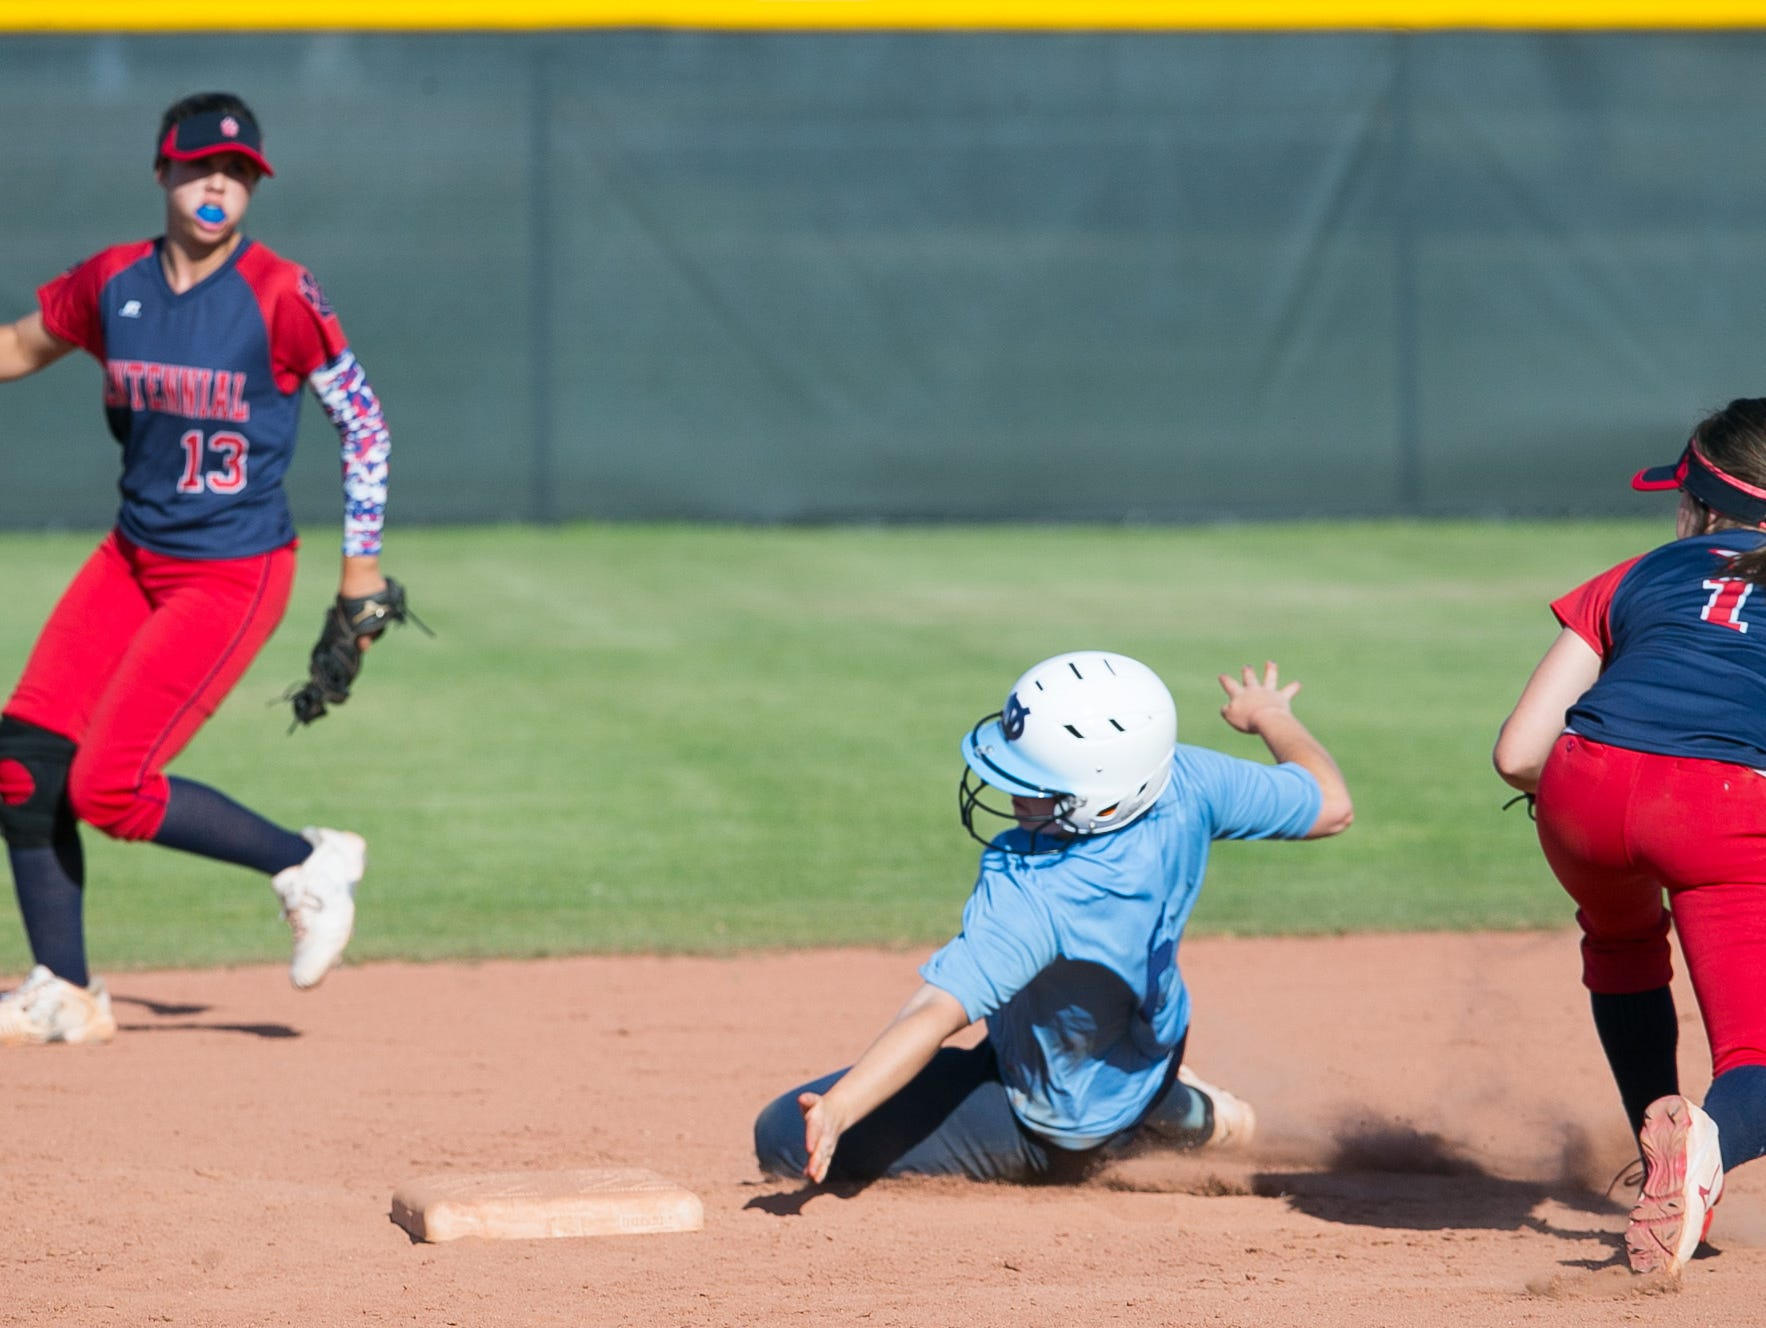 Deer Valley's Marlee Pieper dodges Centennial infielder Skylar McCarty's tag as she steals second base during a game on Thursday, April 14, 2015.